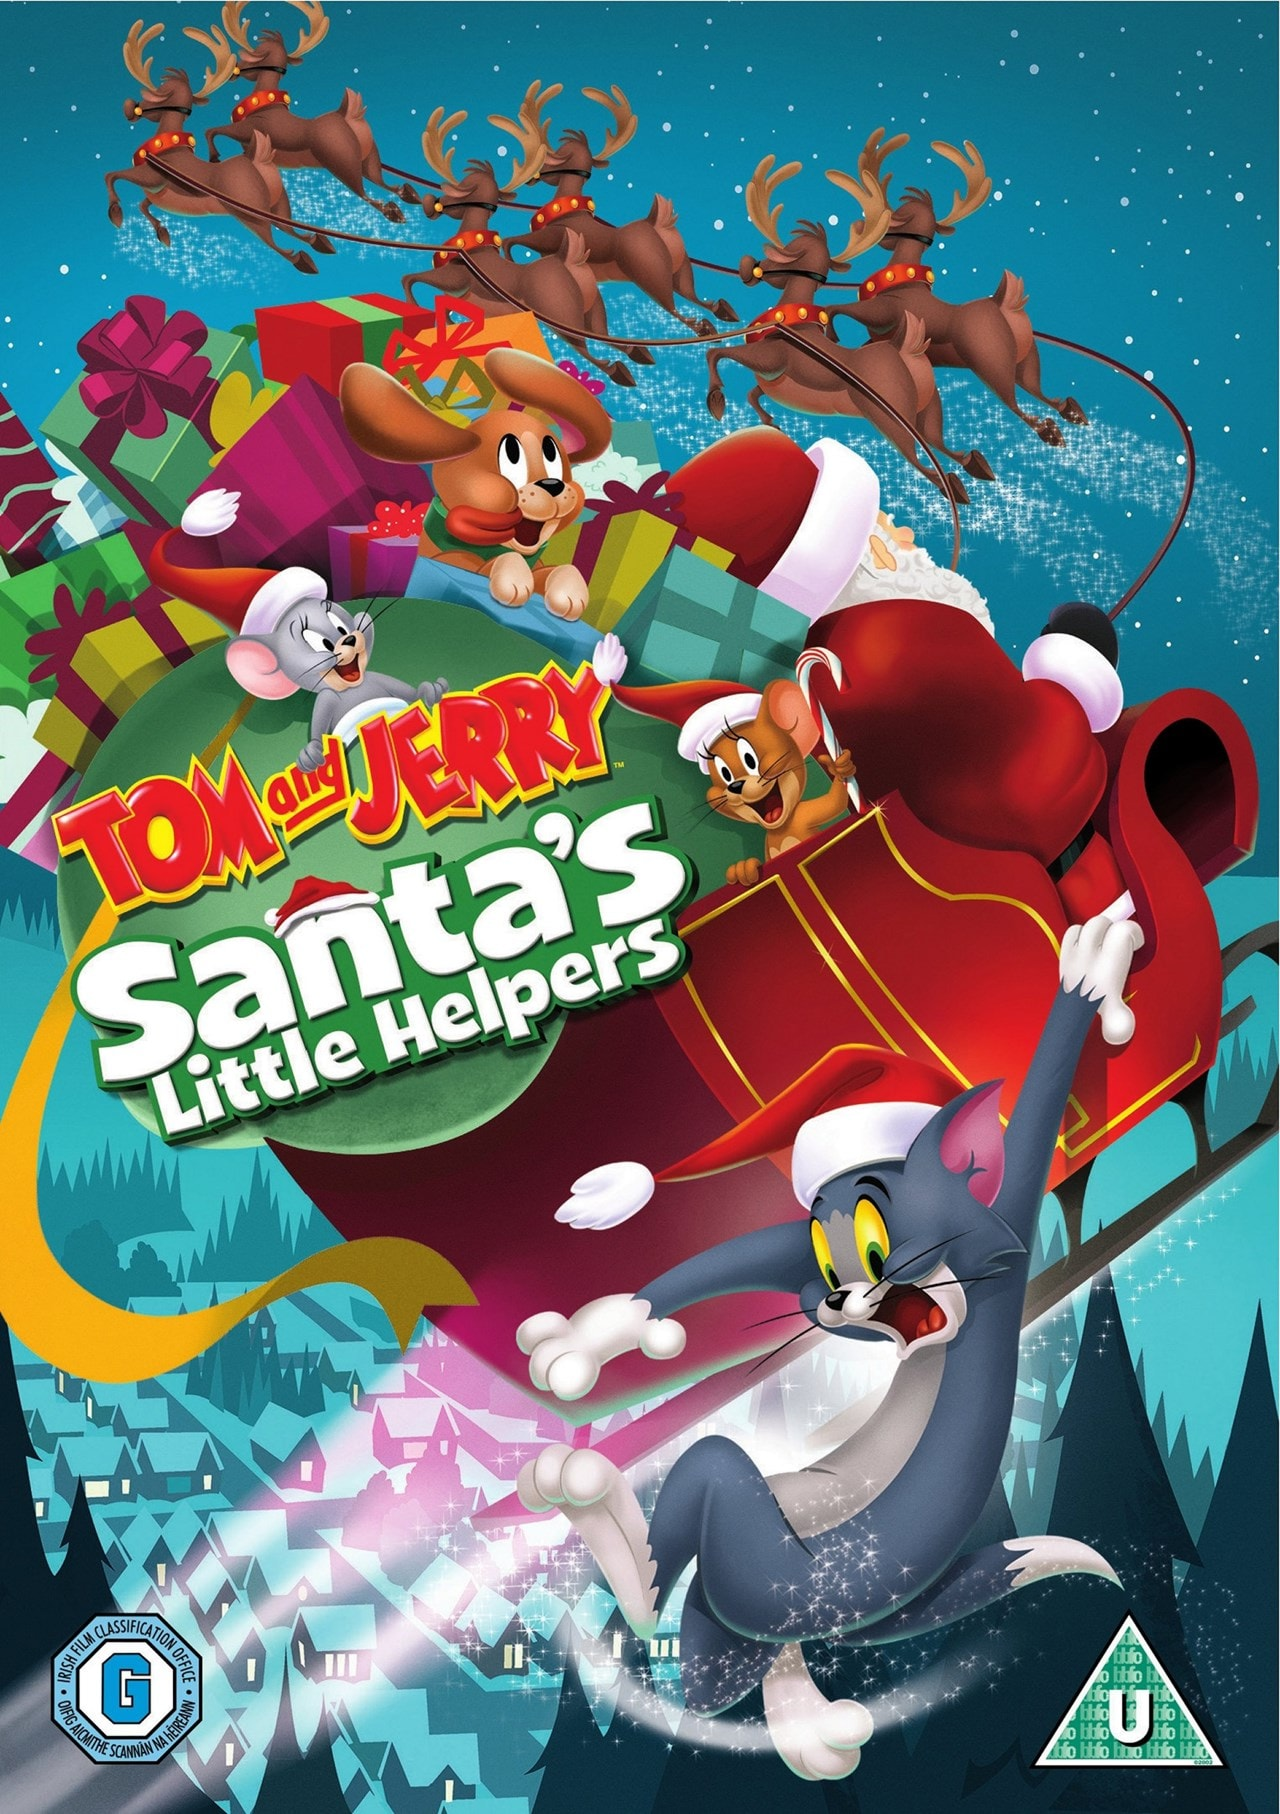 Tom and Jerry's Santa's Little Helpers - 1